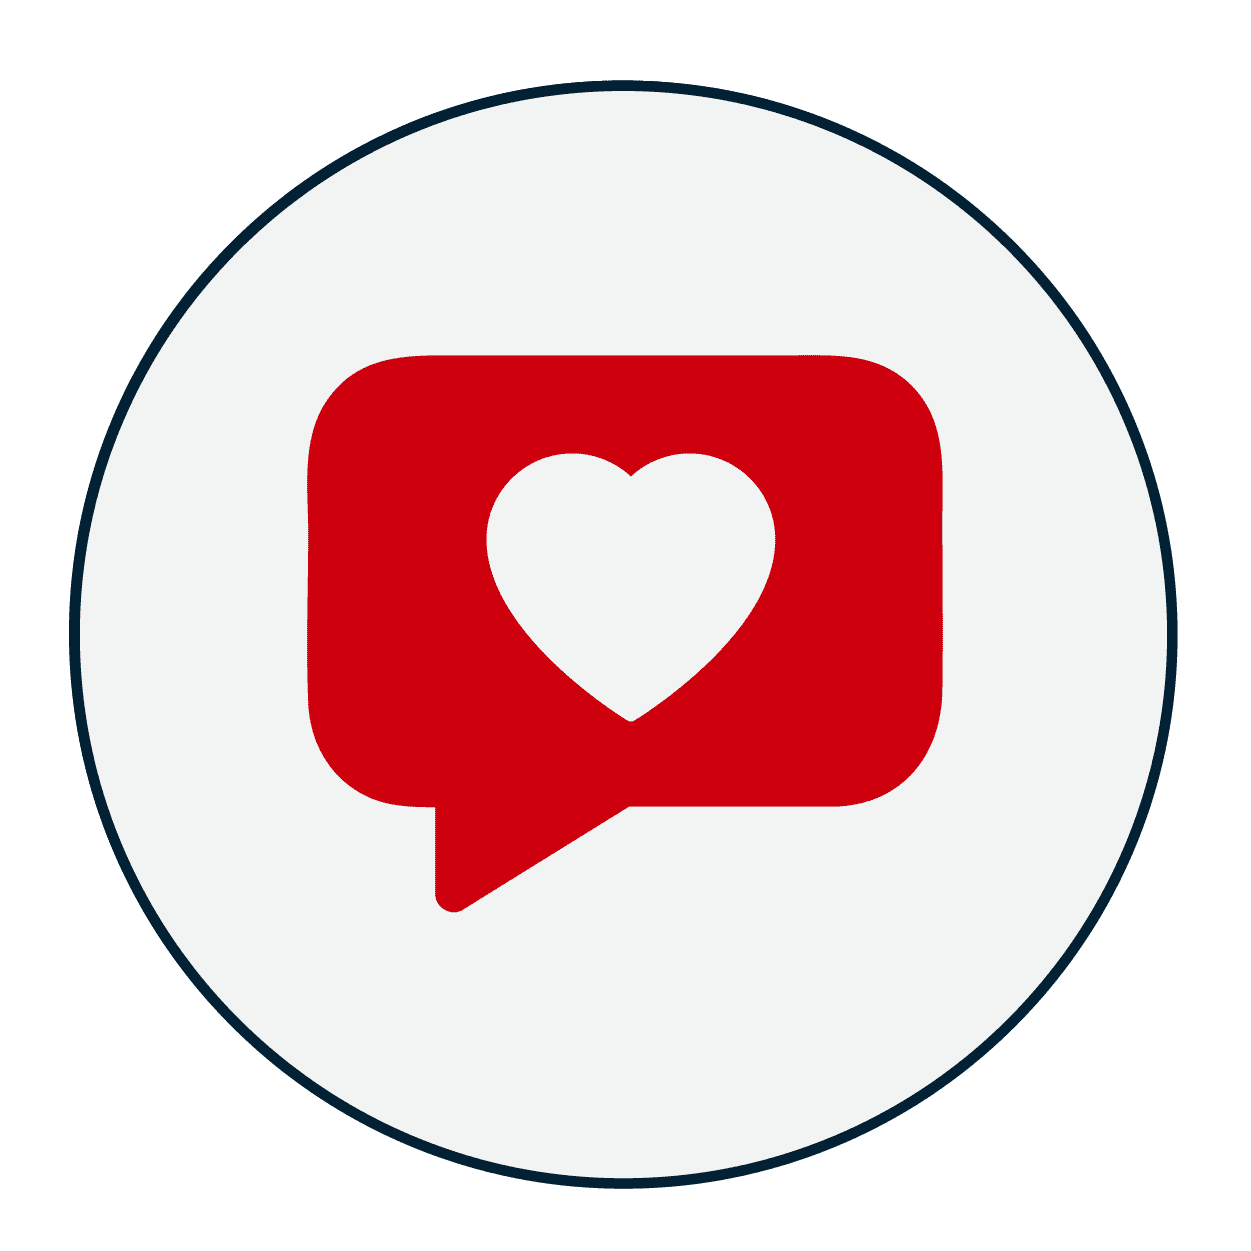 icon of a speech bubble with a heart inside.